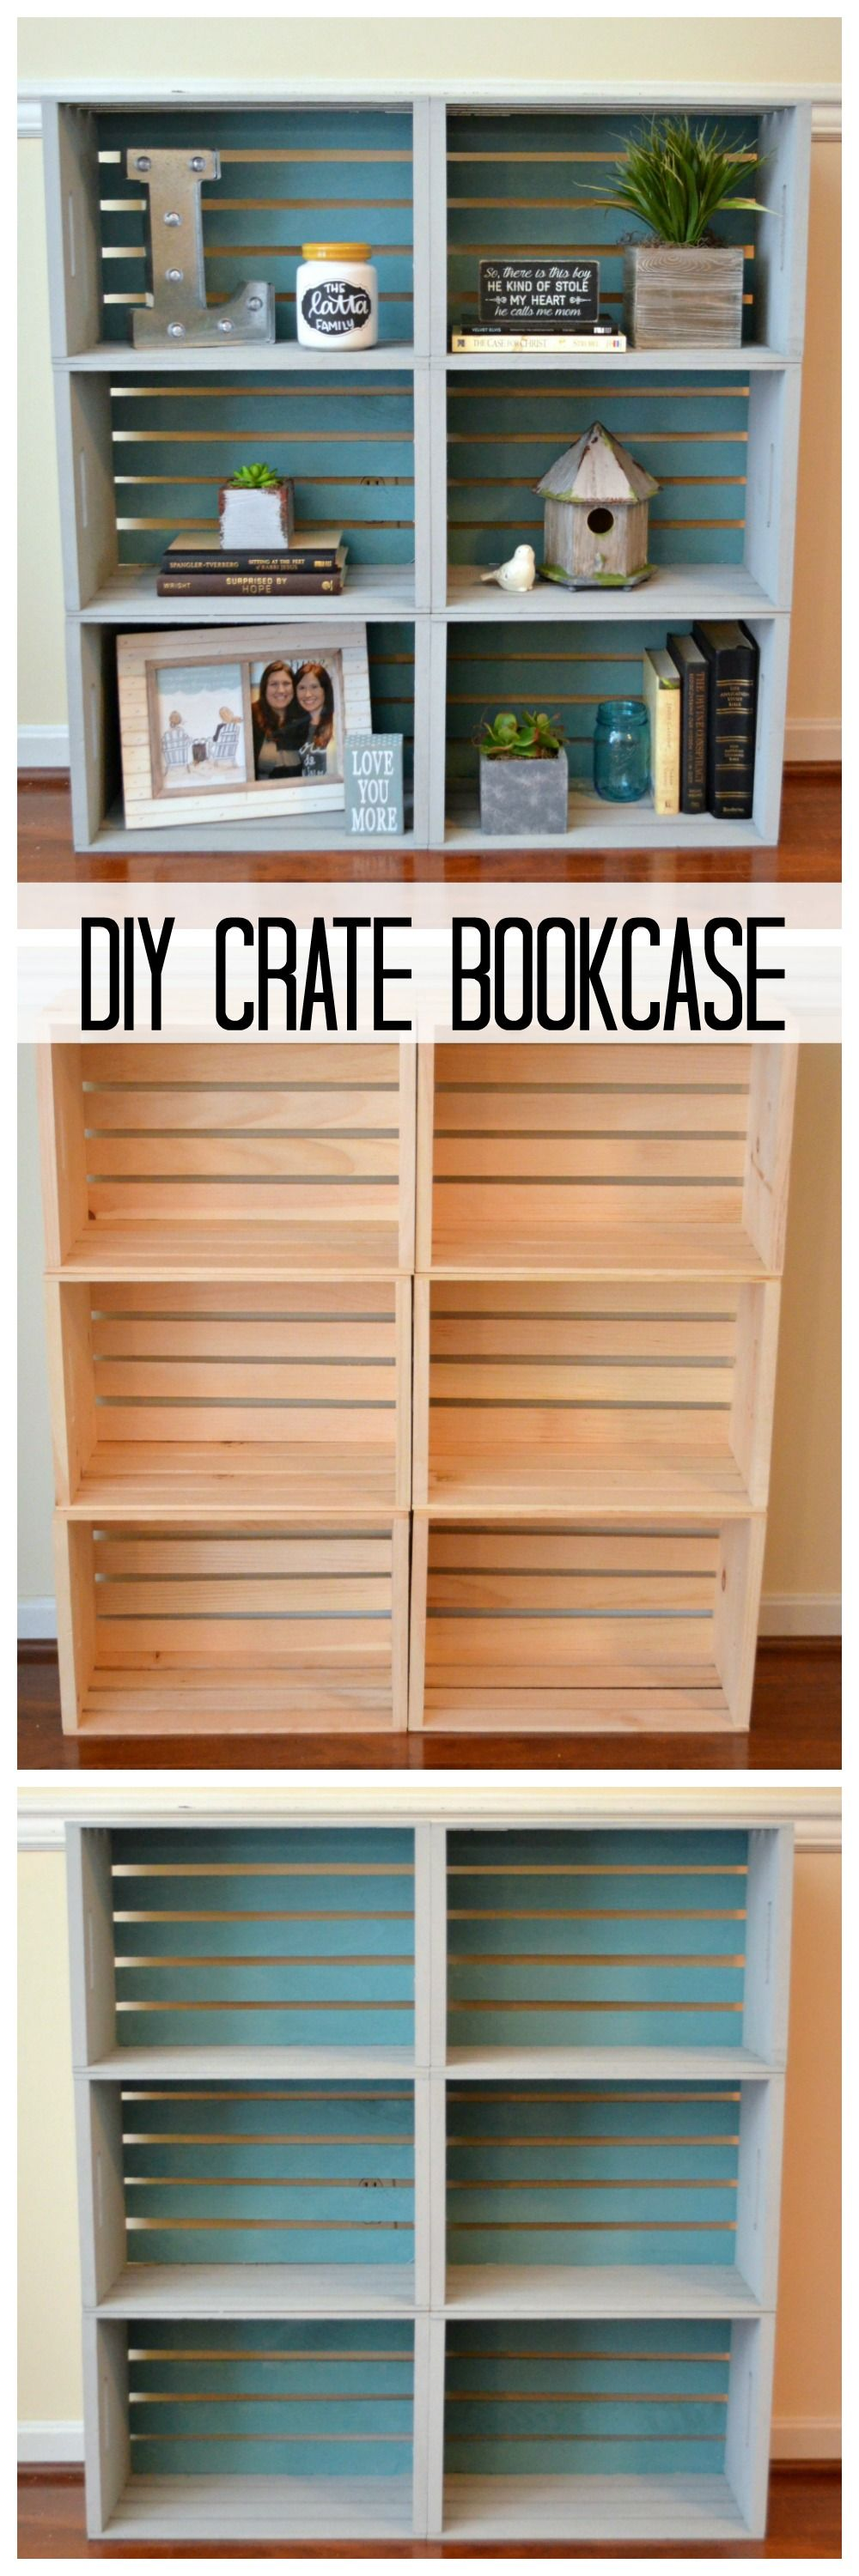 Diy crate bookcase selfmade m bel und wohnideen for Selfmade wohnideen